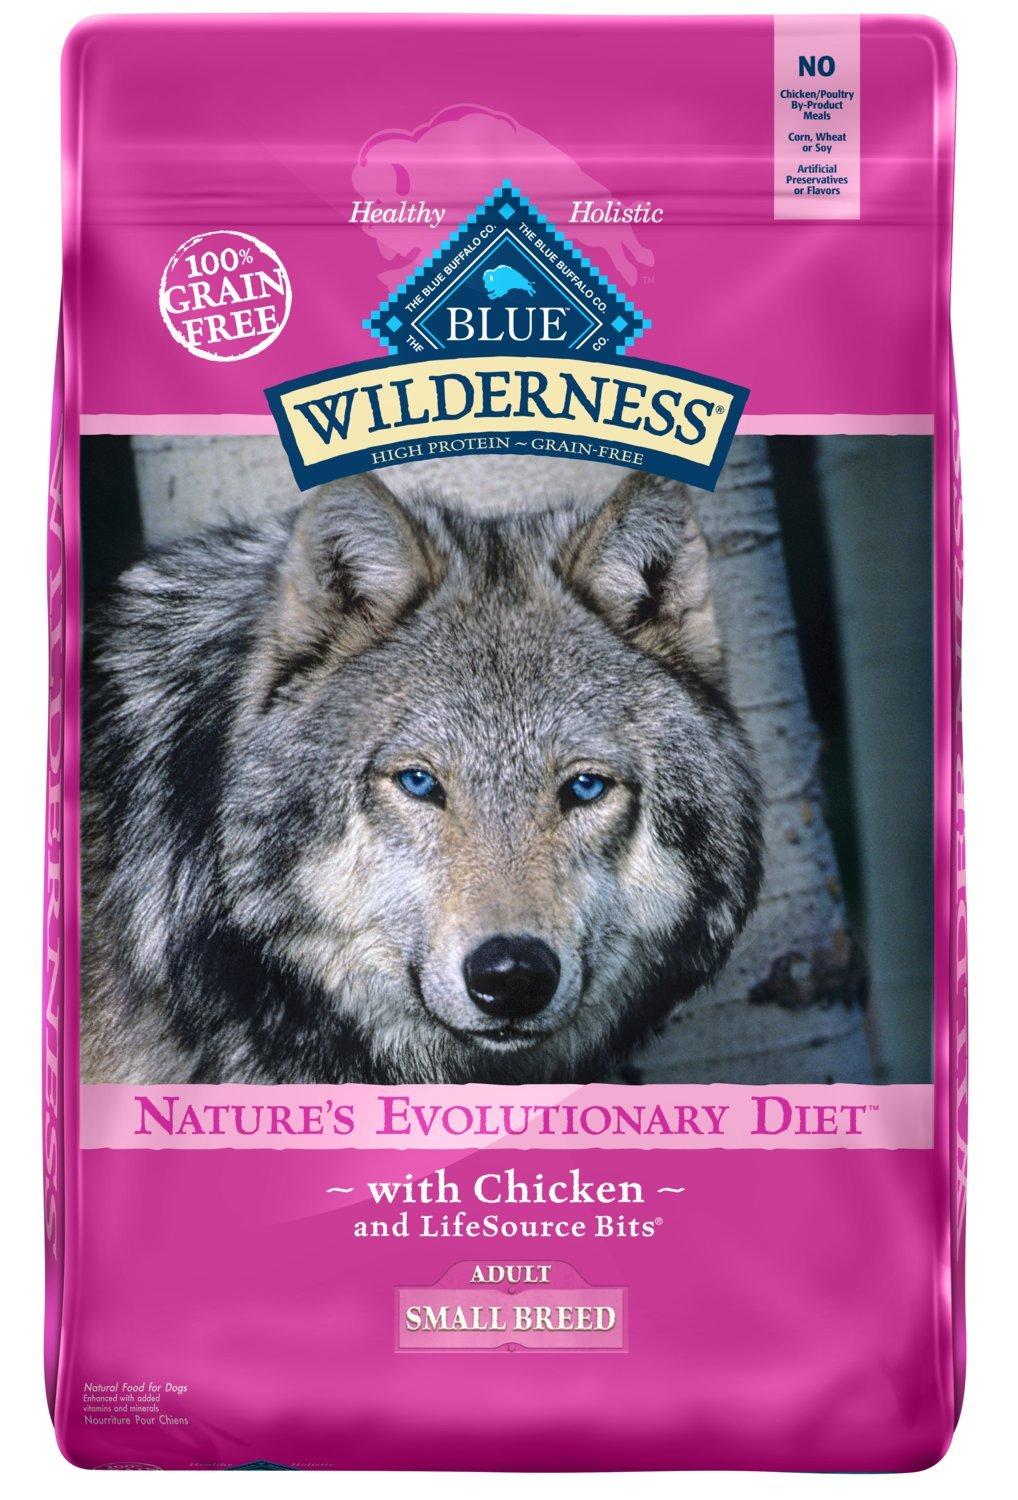 Blue Buffalo Wilderness High Protein Grain Free, Natural Adult Small Breed Dry Dog Food